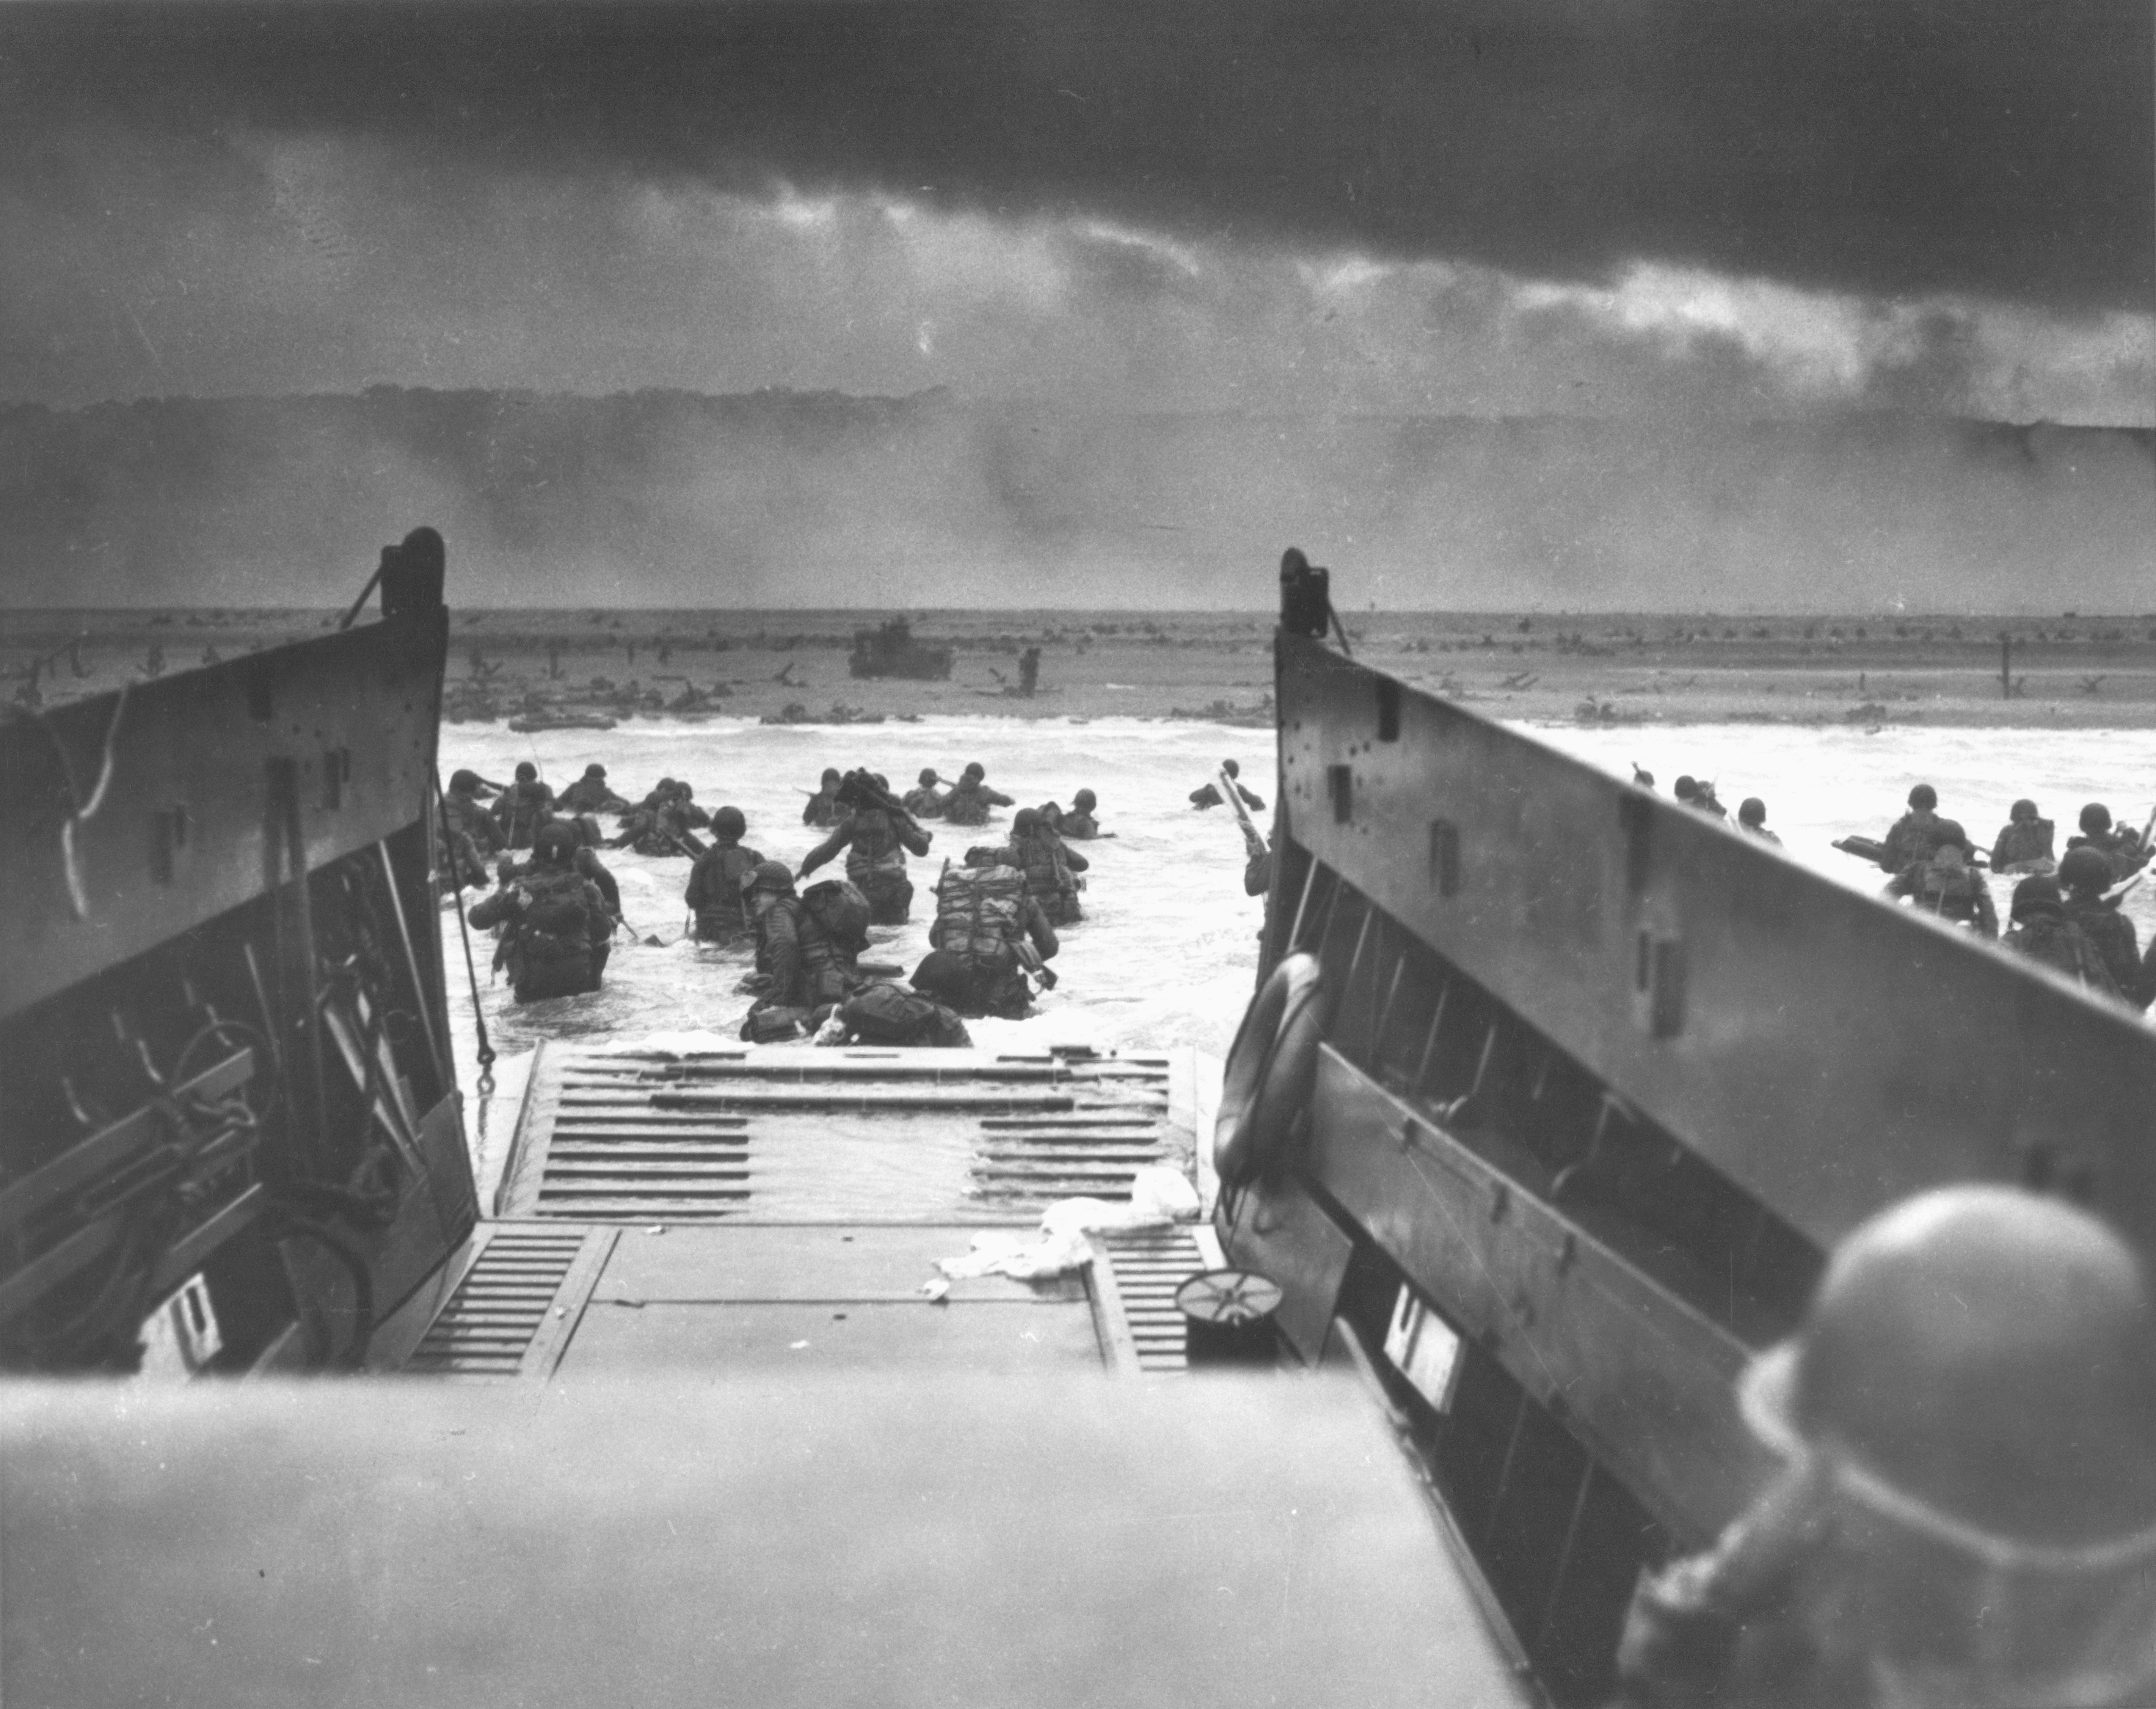 File:D-day Normandy Nara 26-G-2343.jpg